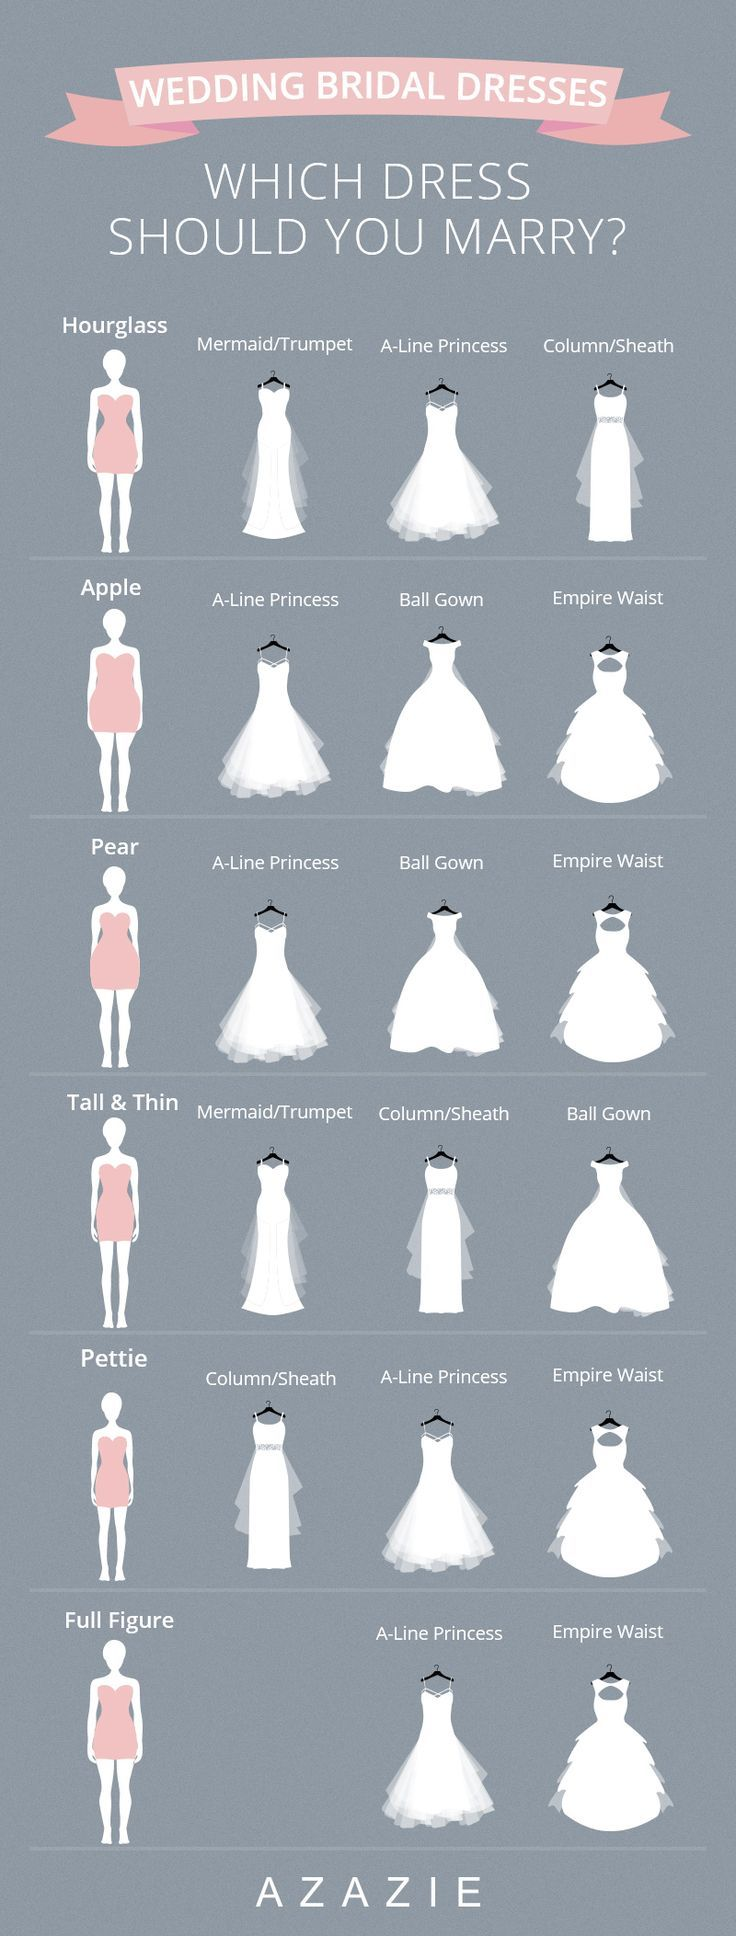 We're right here that can assist you pinpoint the marriage costume silhouette that brings out y…